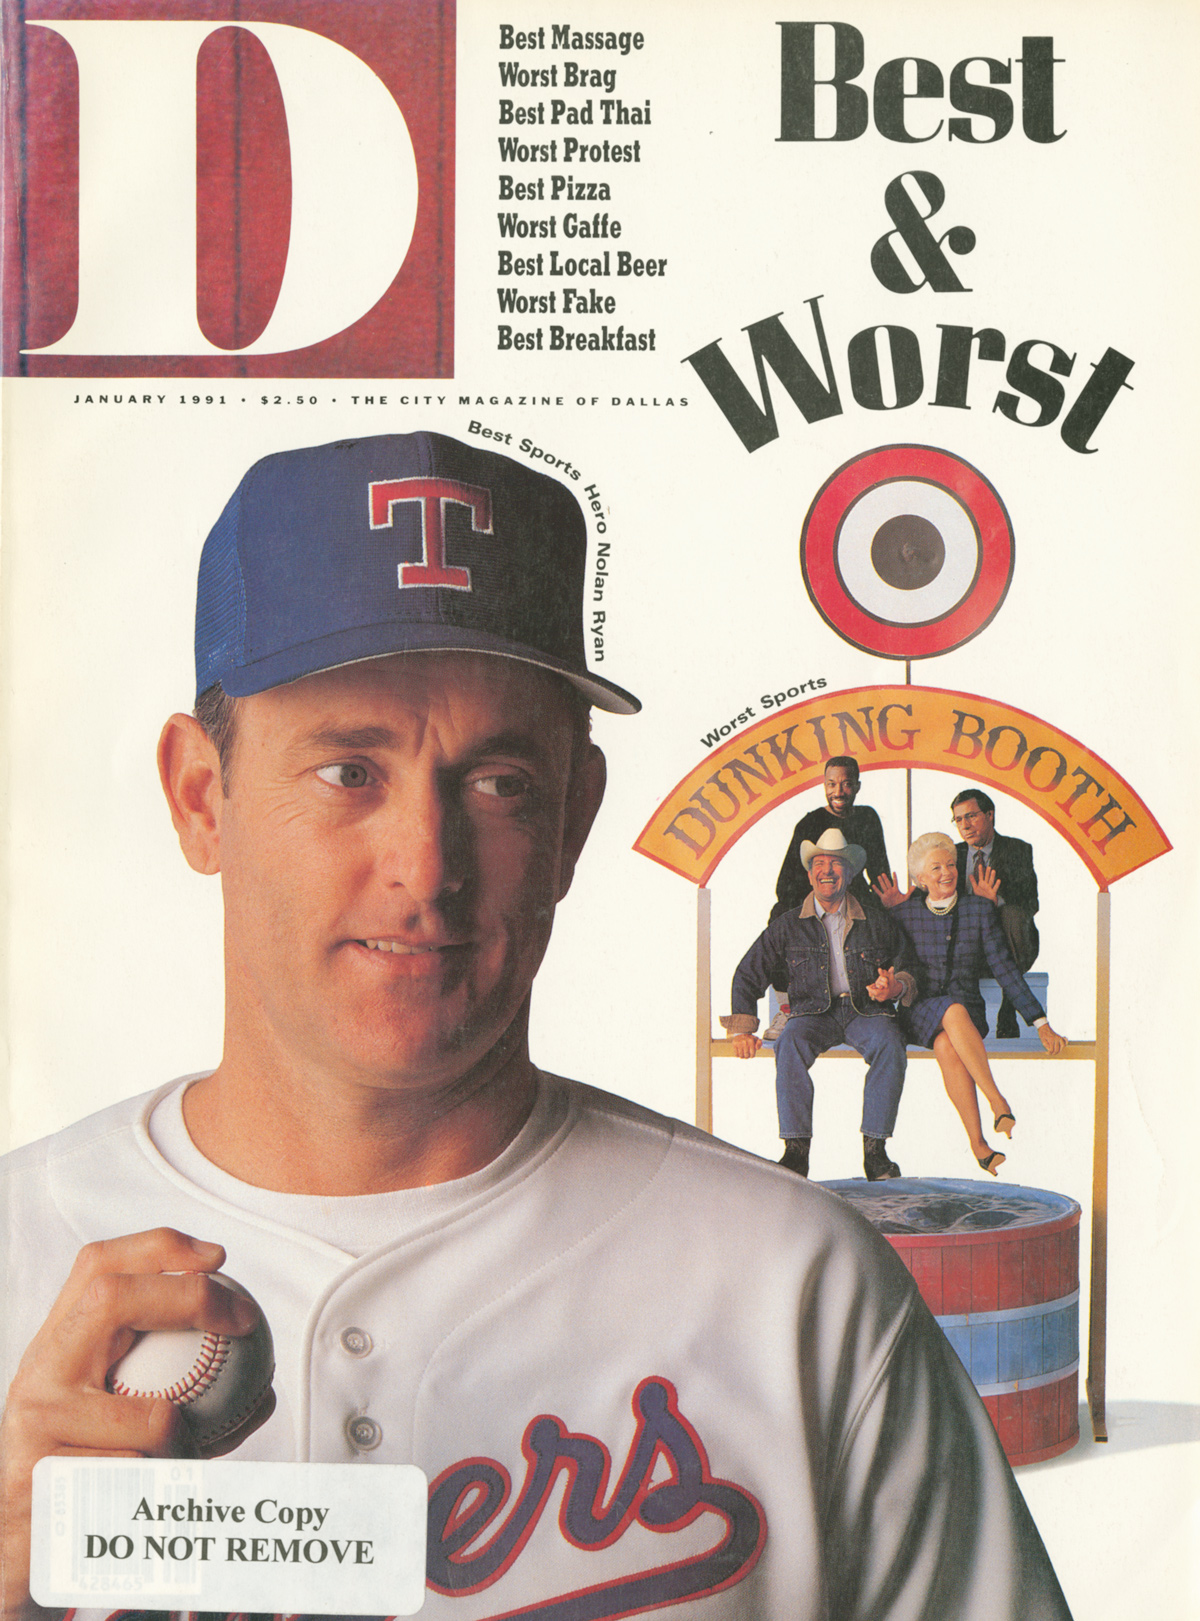 January 1991 cover